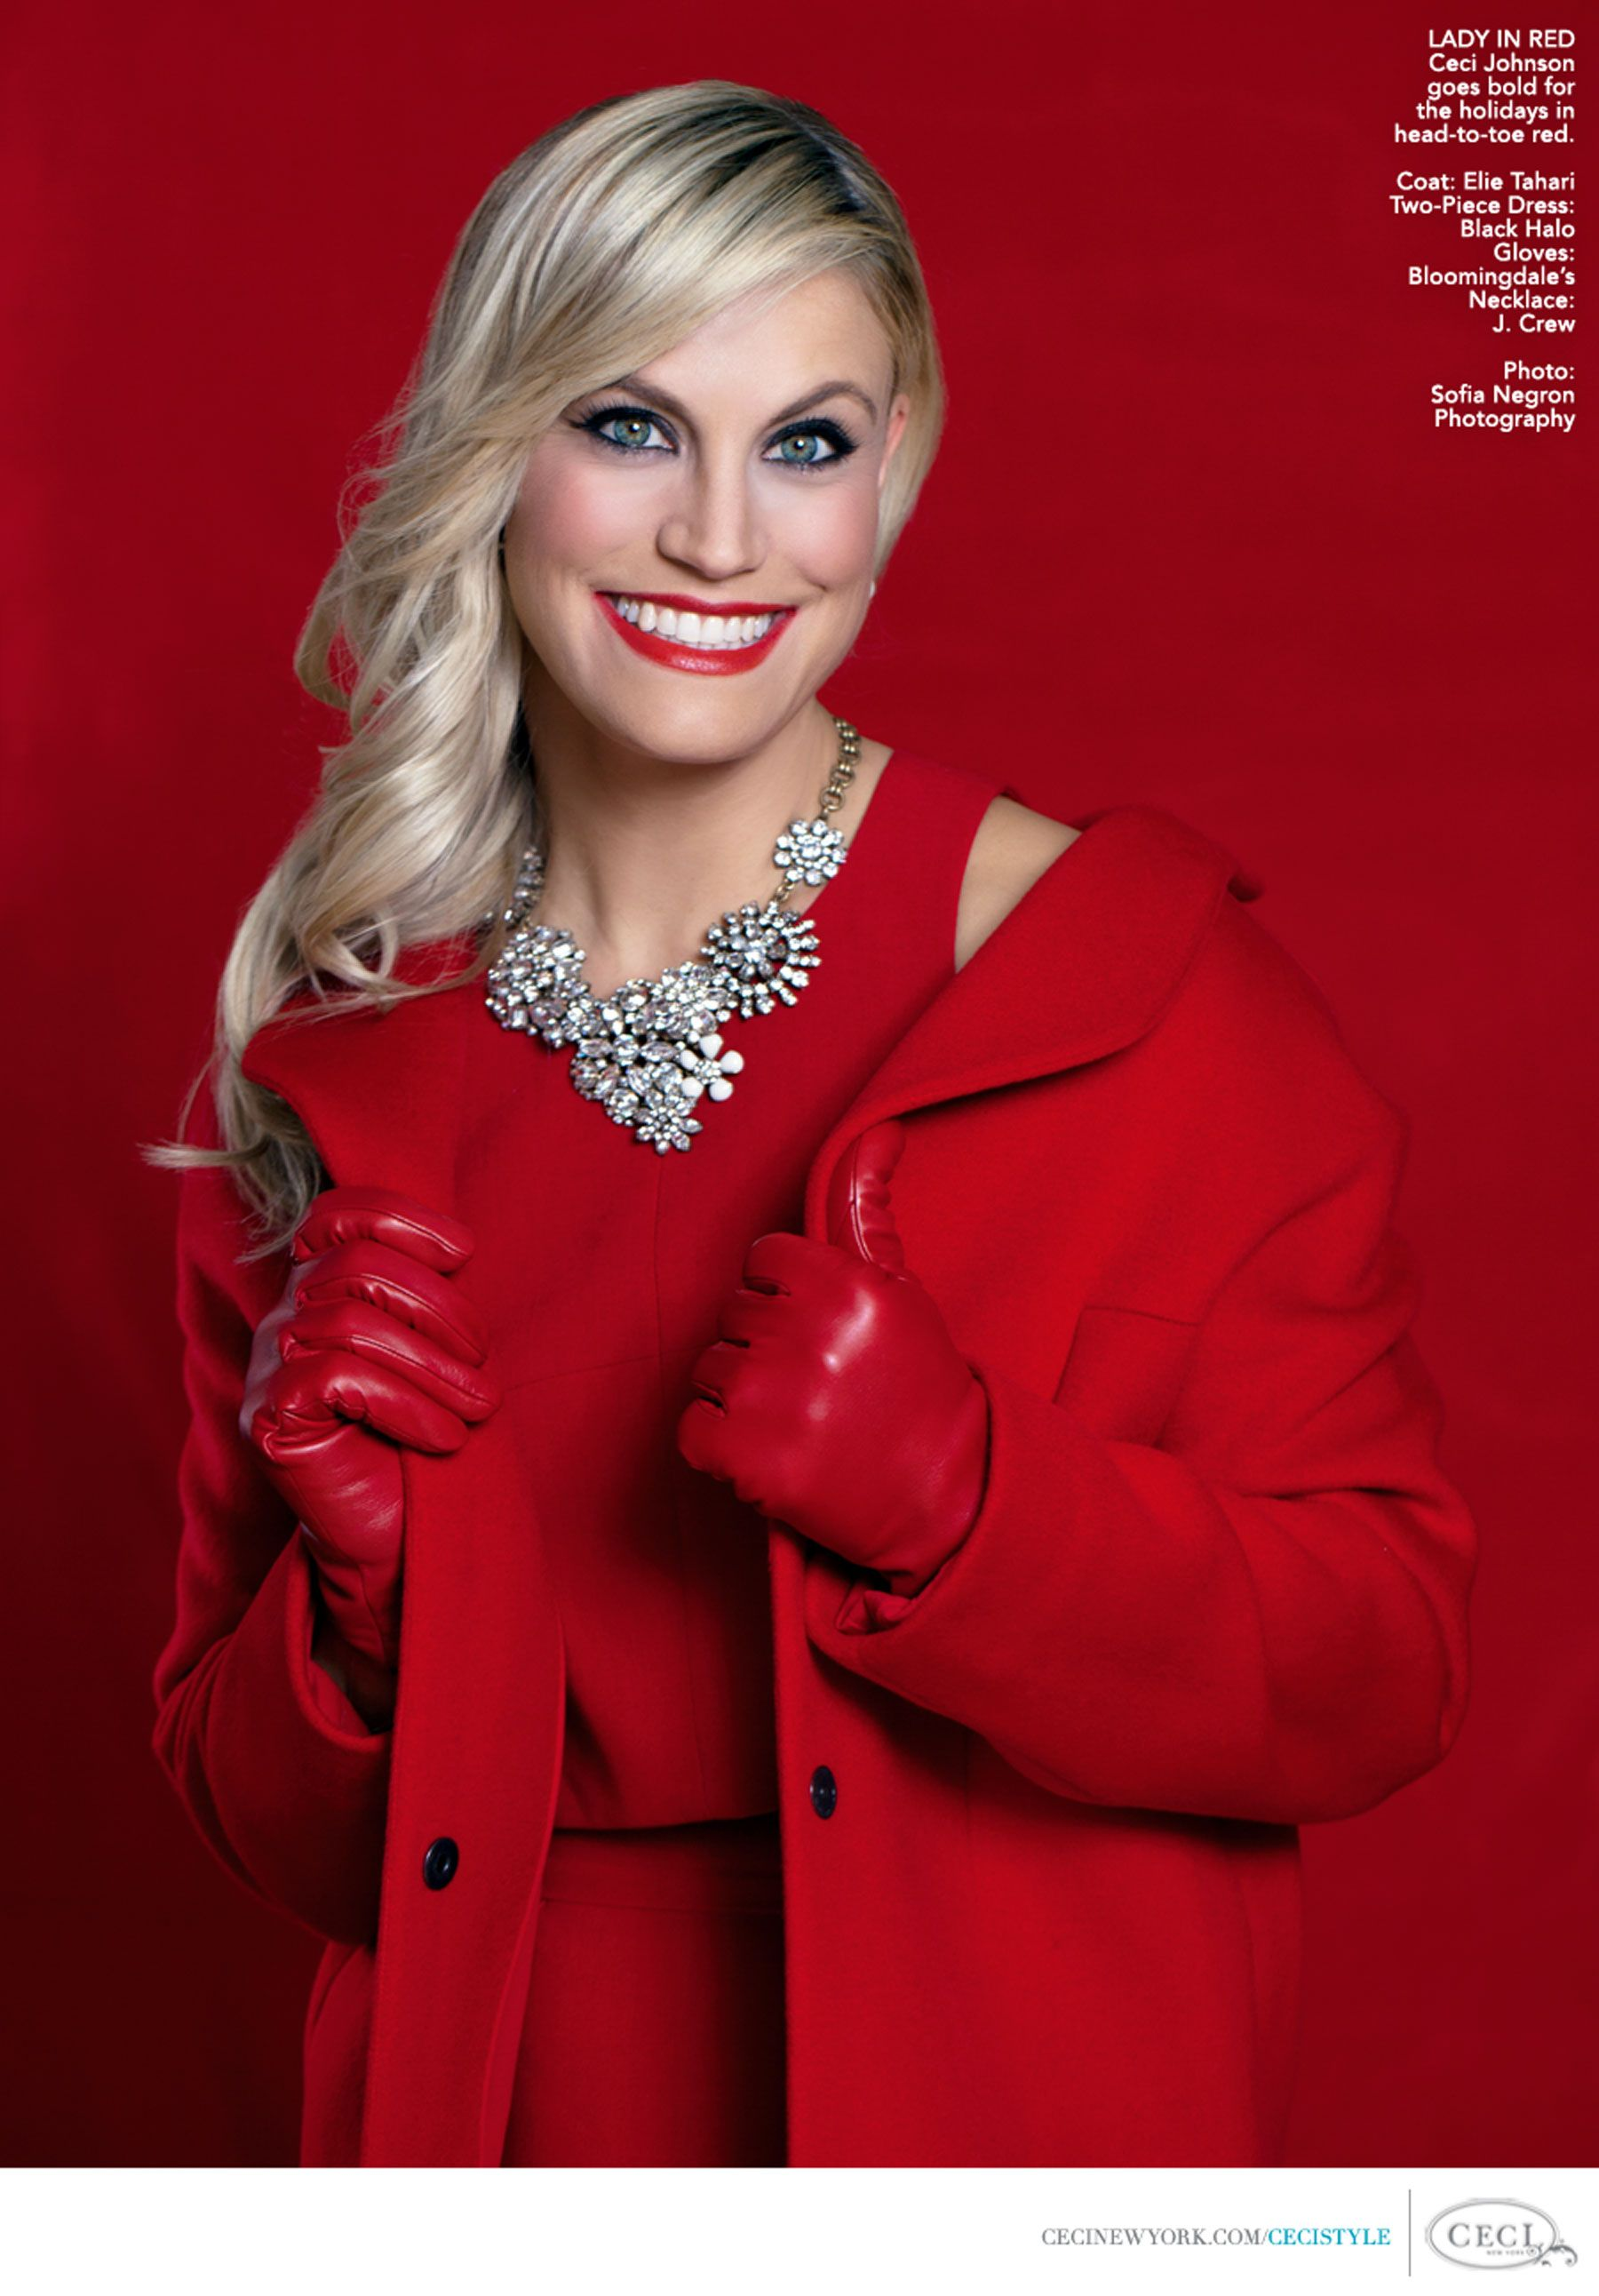 LADY IN RED - Ceci Johnson goes bold for the holidays in head-to-toe ...